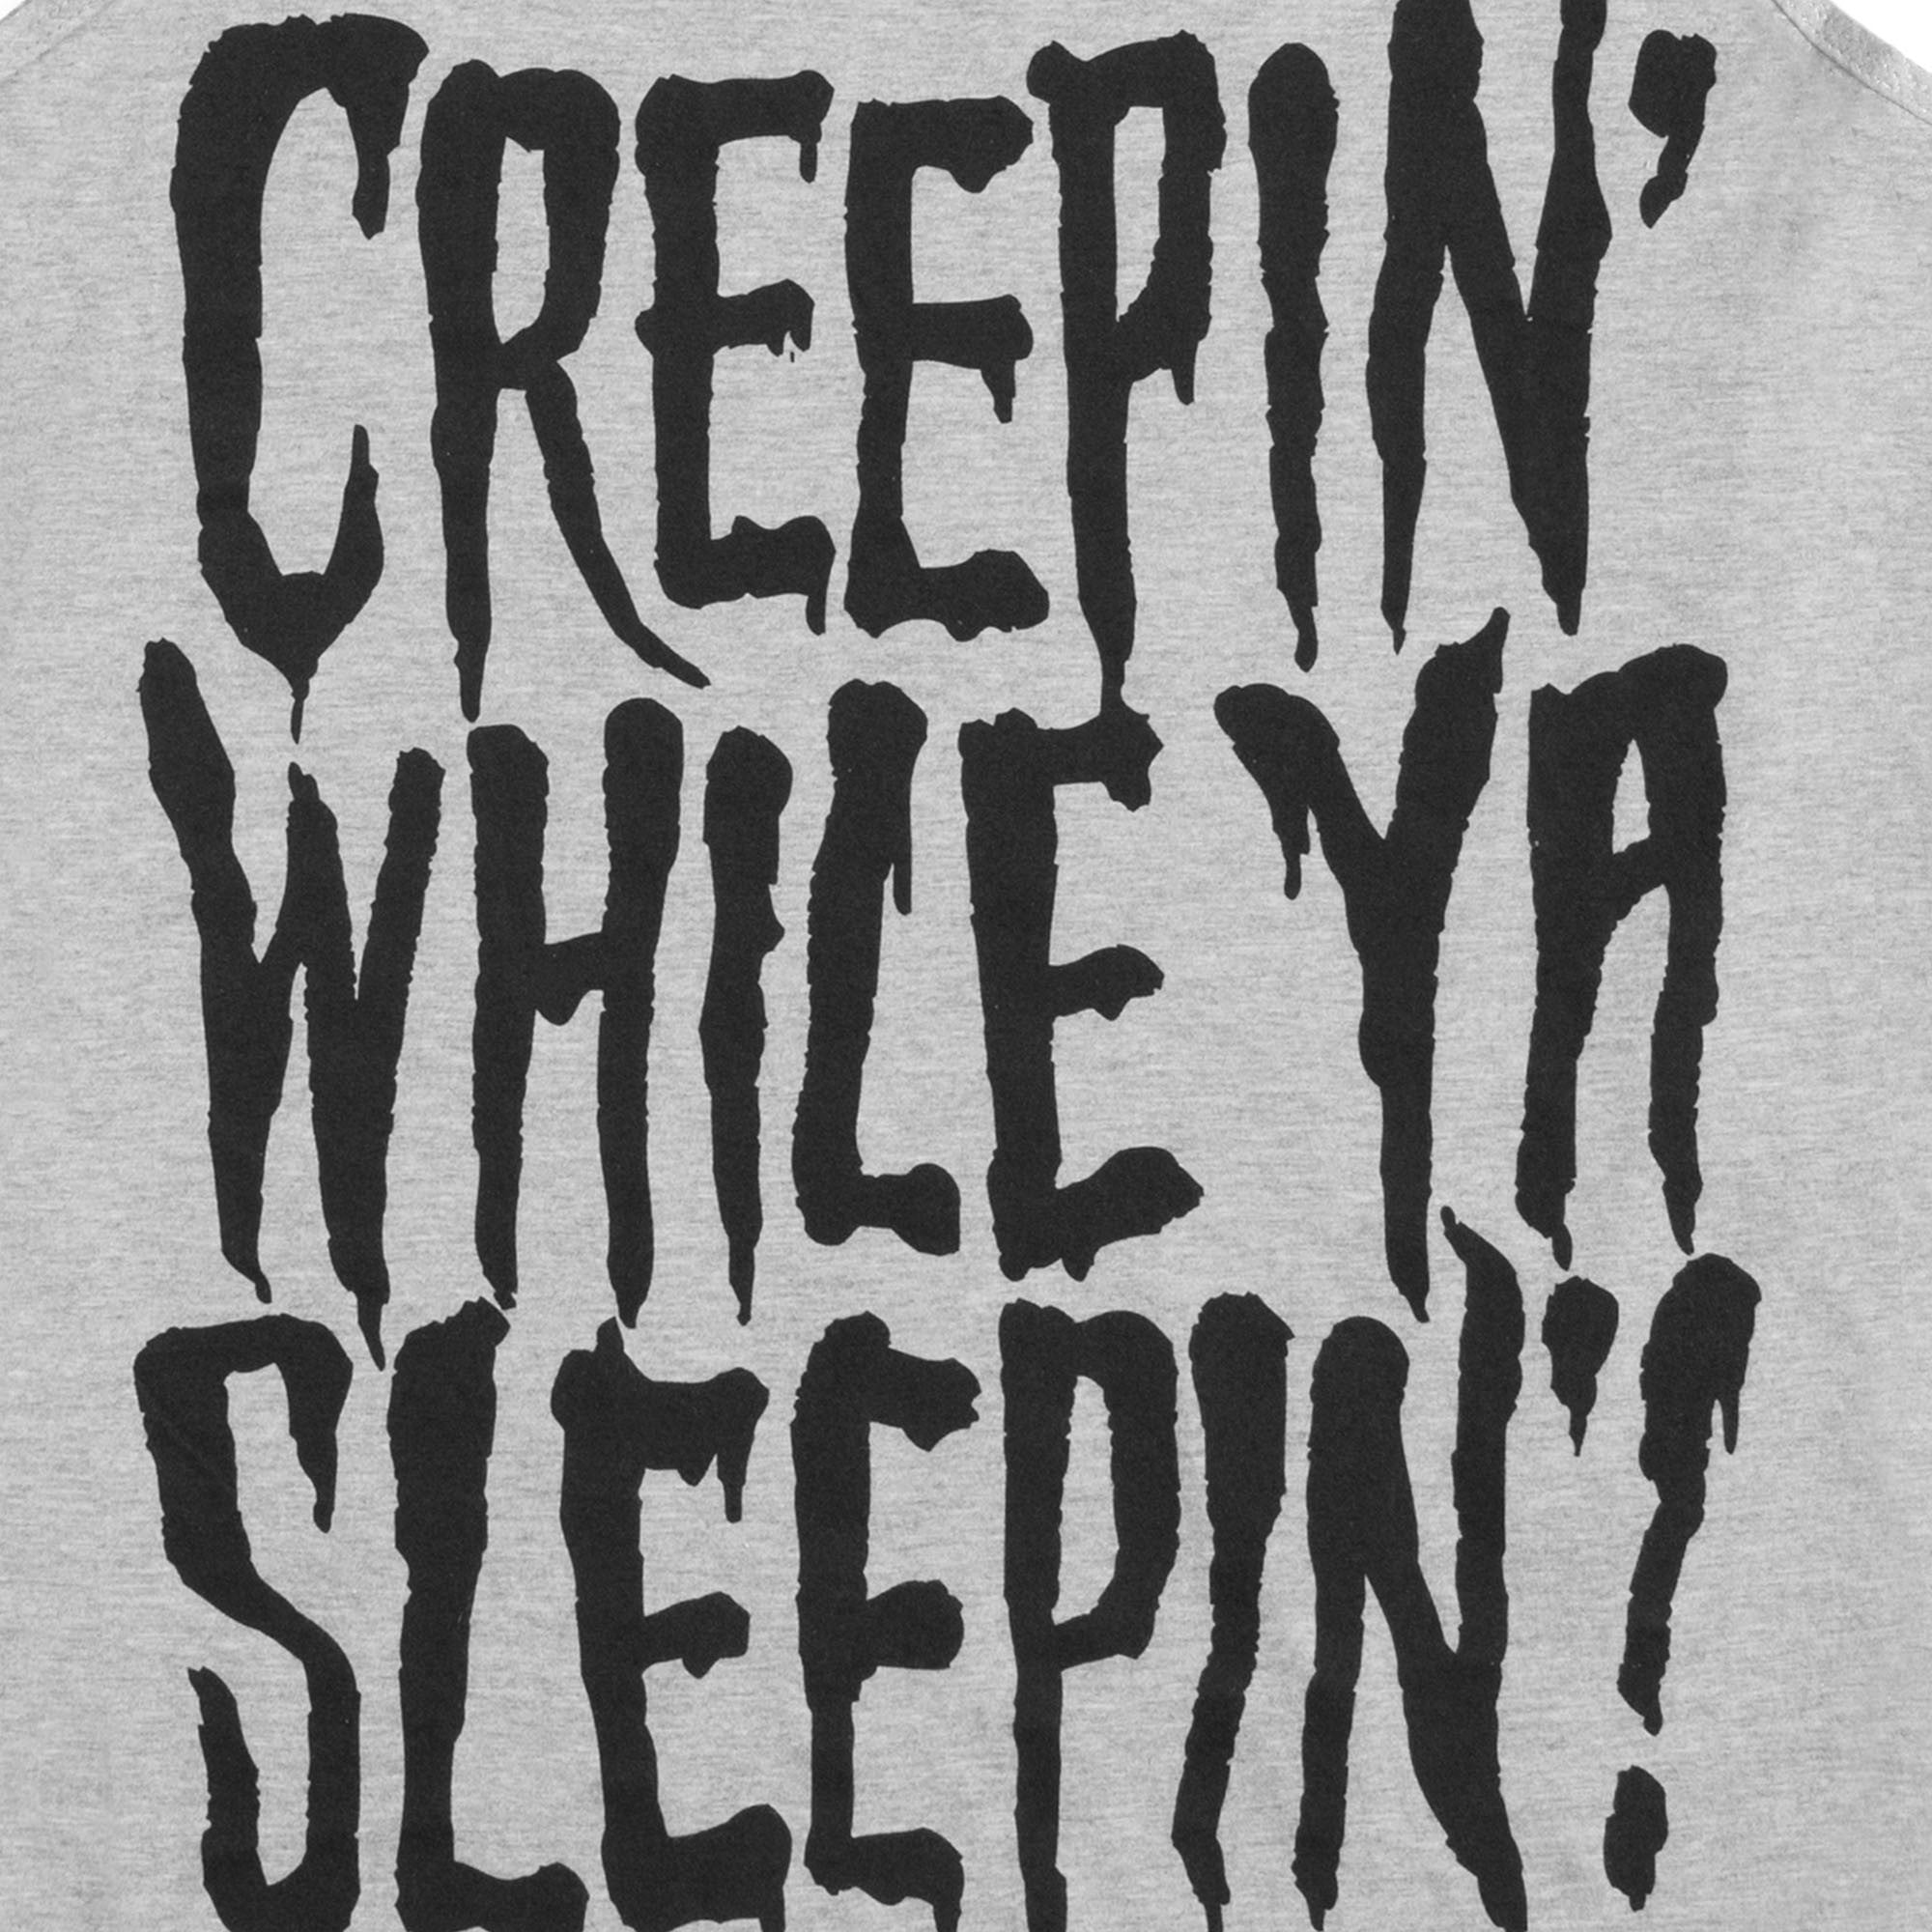 CREEP SLEEP TANK